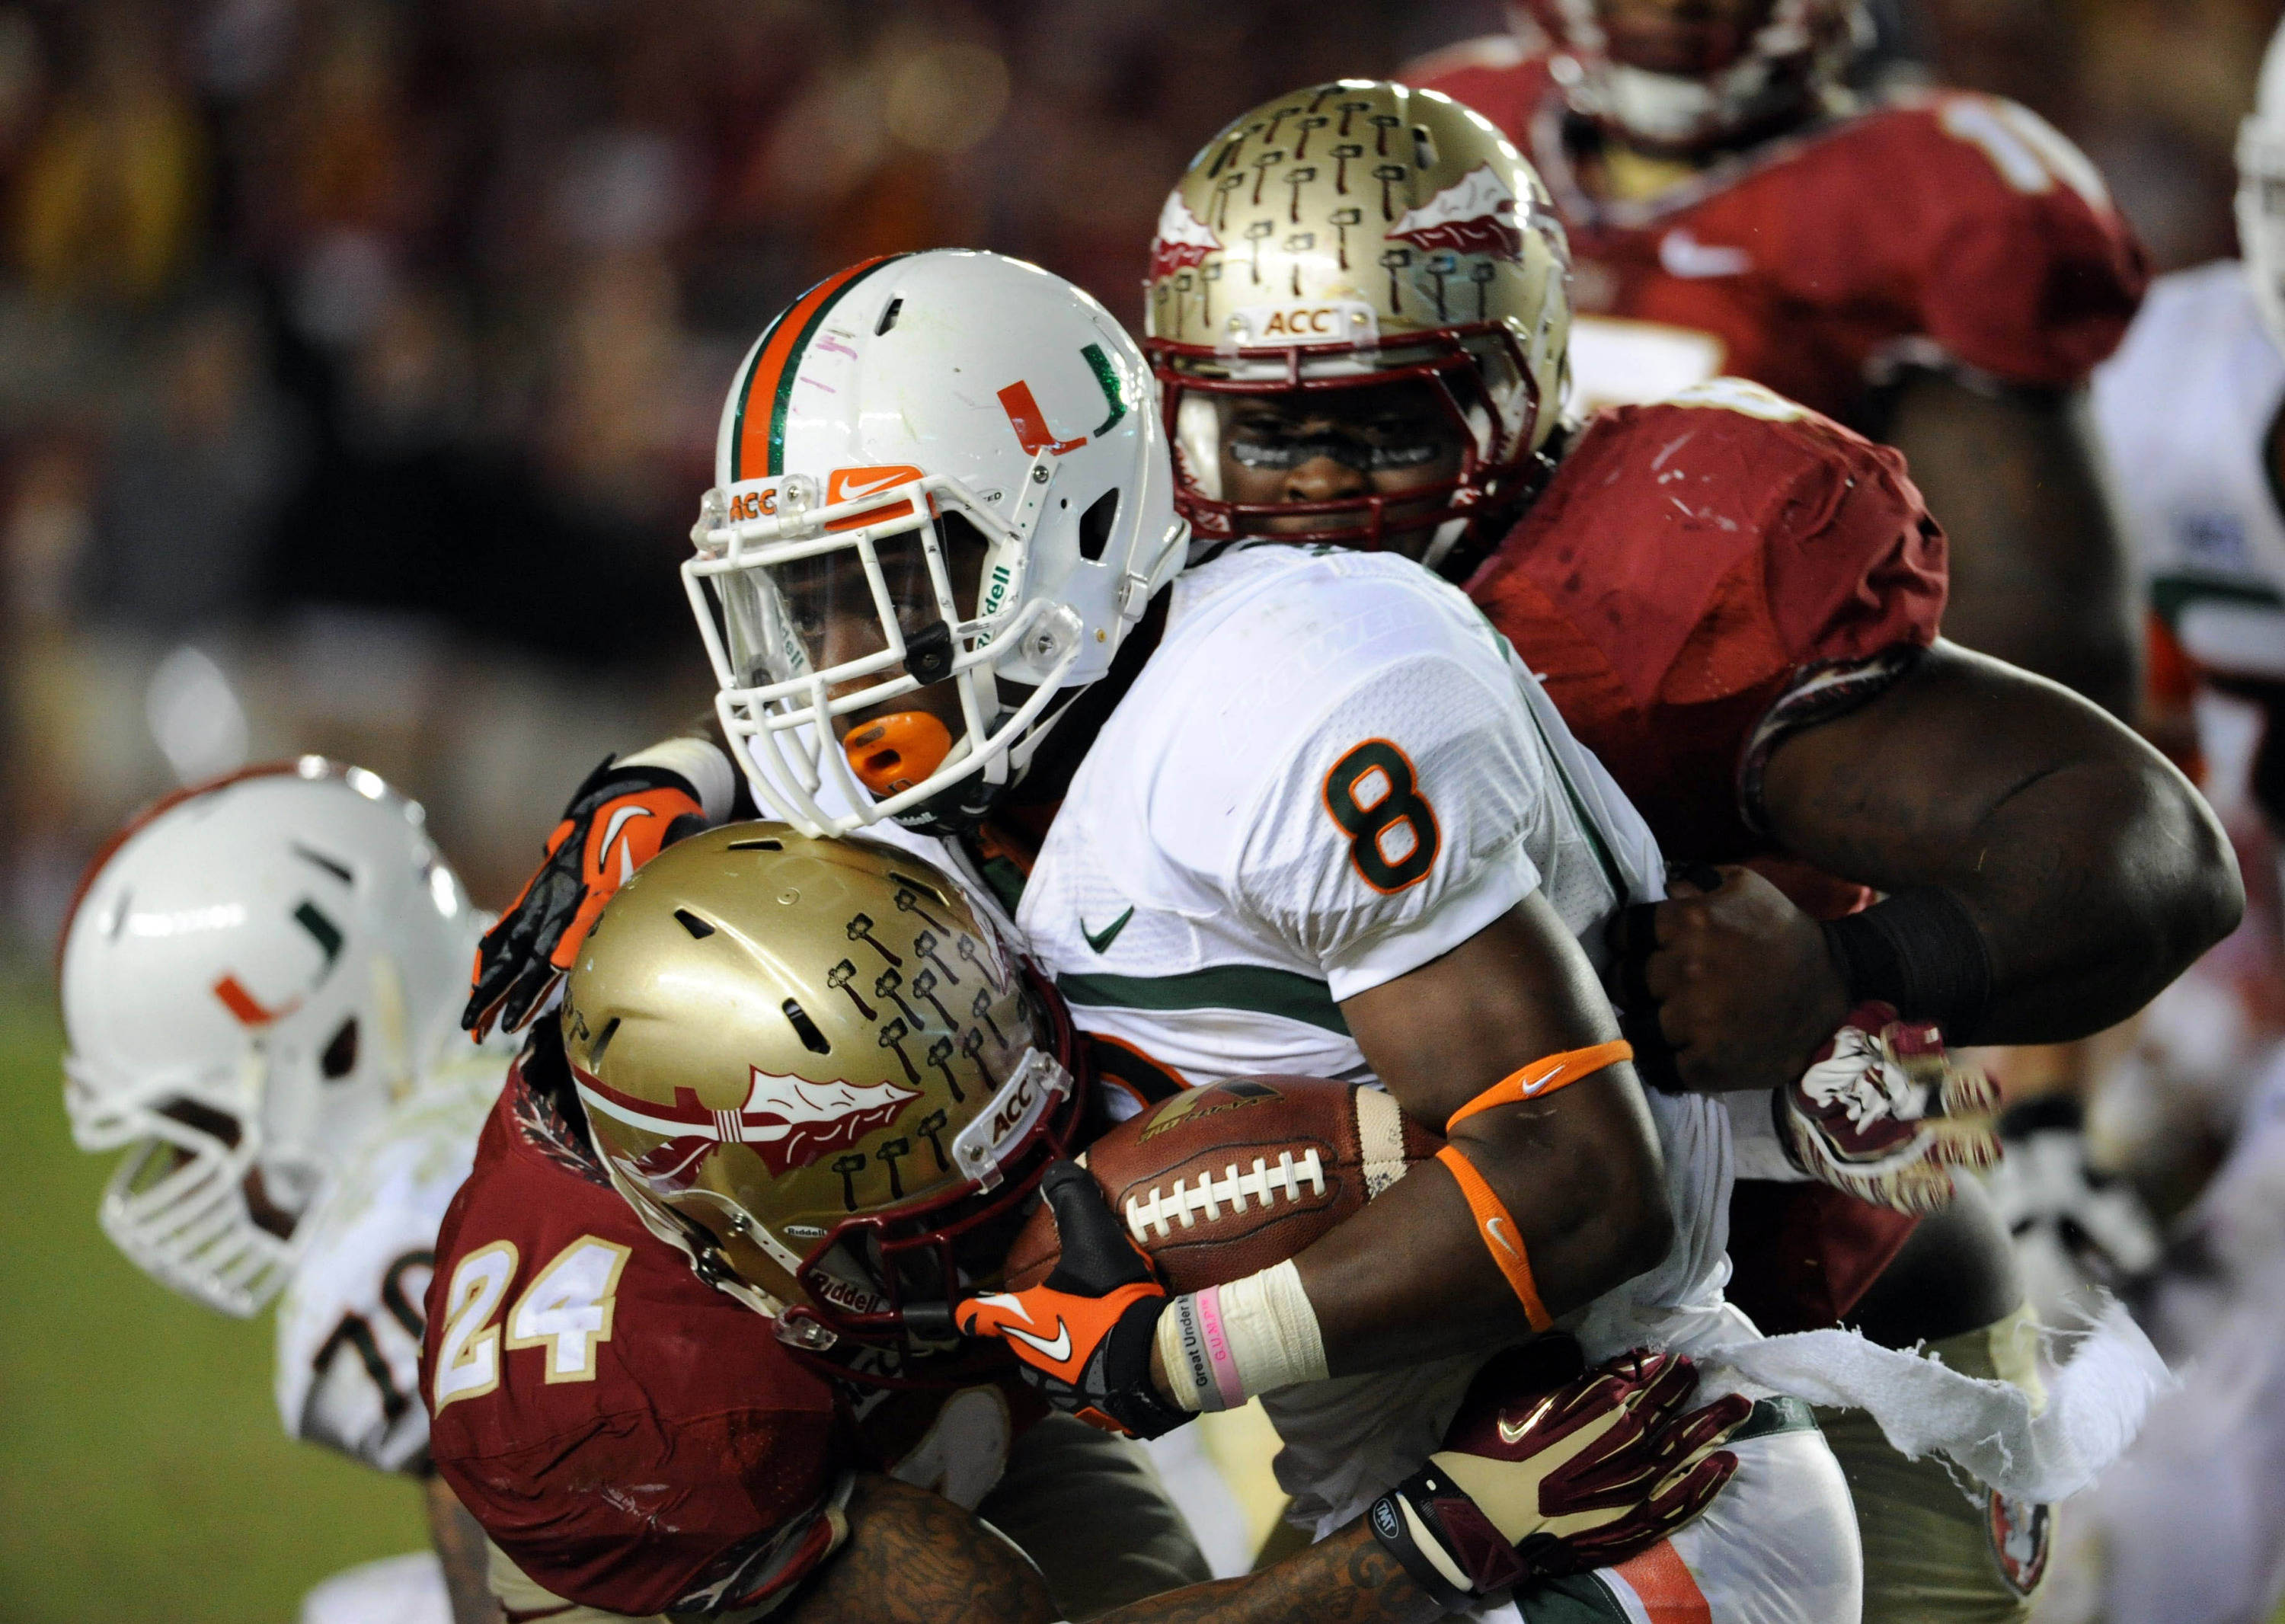 Miami Hurricanes running back Duke Johnson (8) is tackled by Florida State Seminoles linebacker Terrance Smith (24) and defensive tackle Timmy Jernigan (8) during the first half at Doak Campbell Stadium. Mandatory Credit: Melina Vastola-USA TODAY Sports